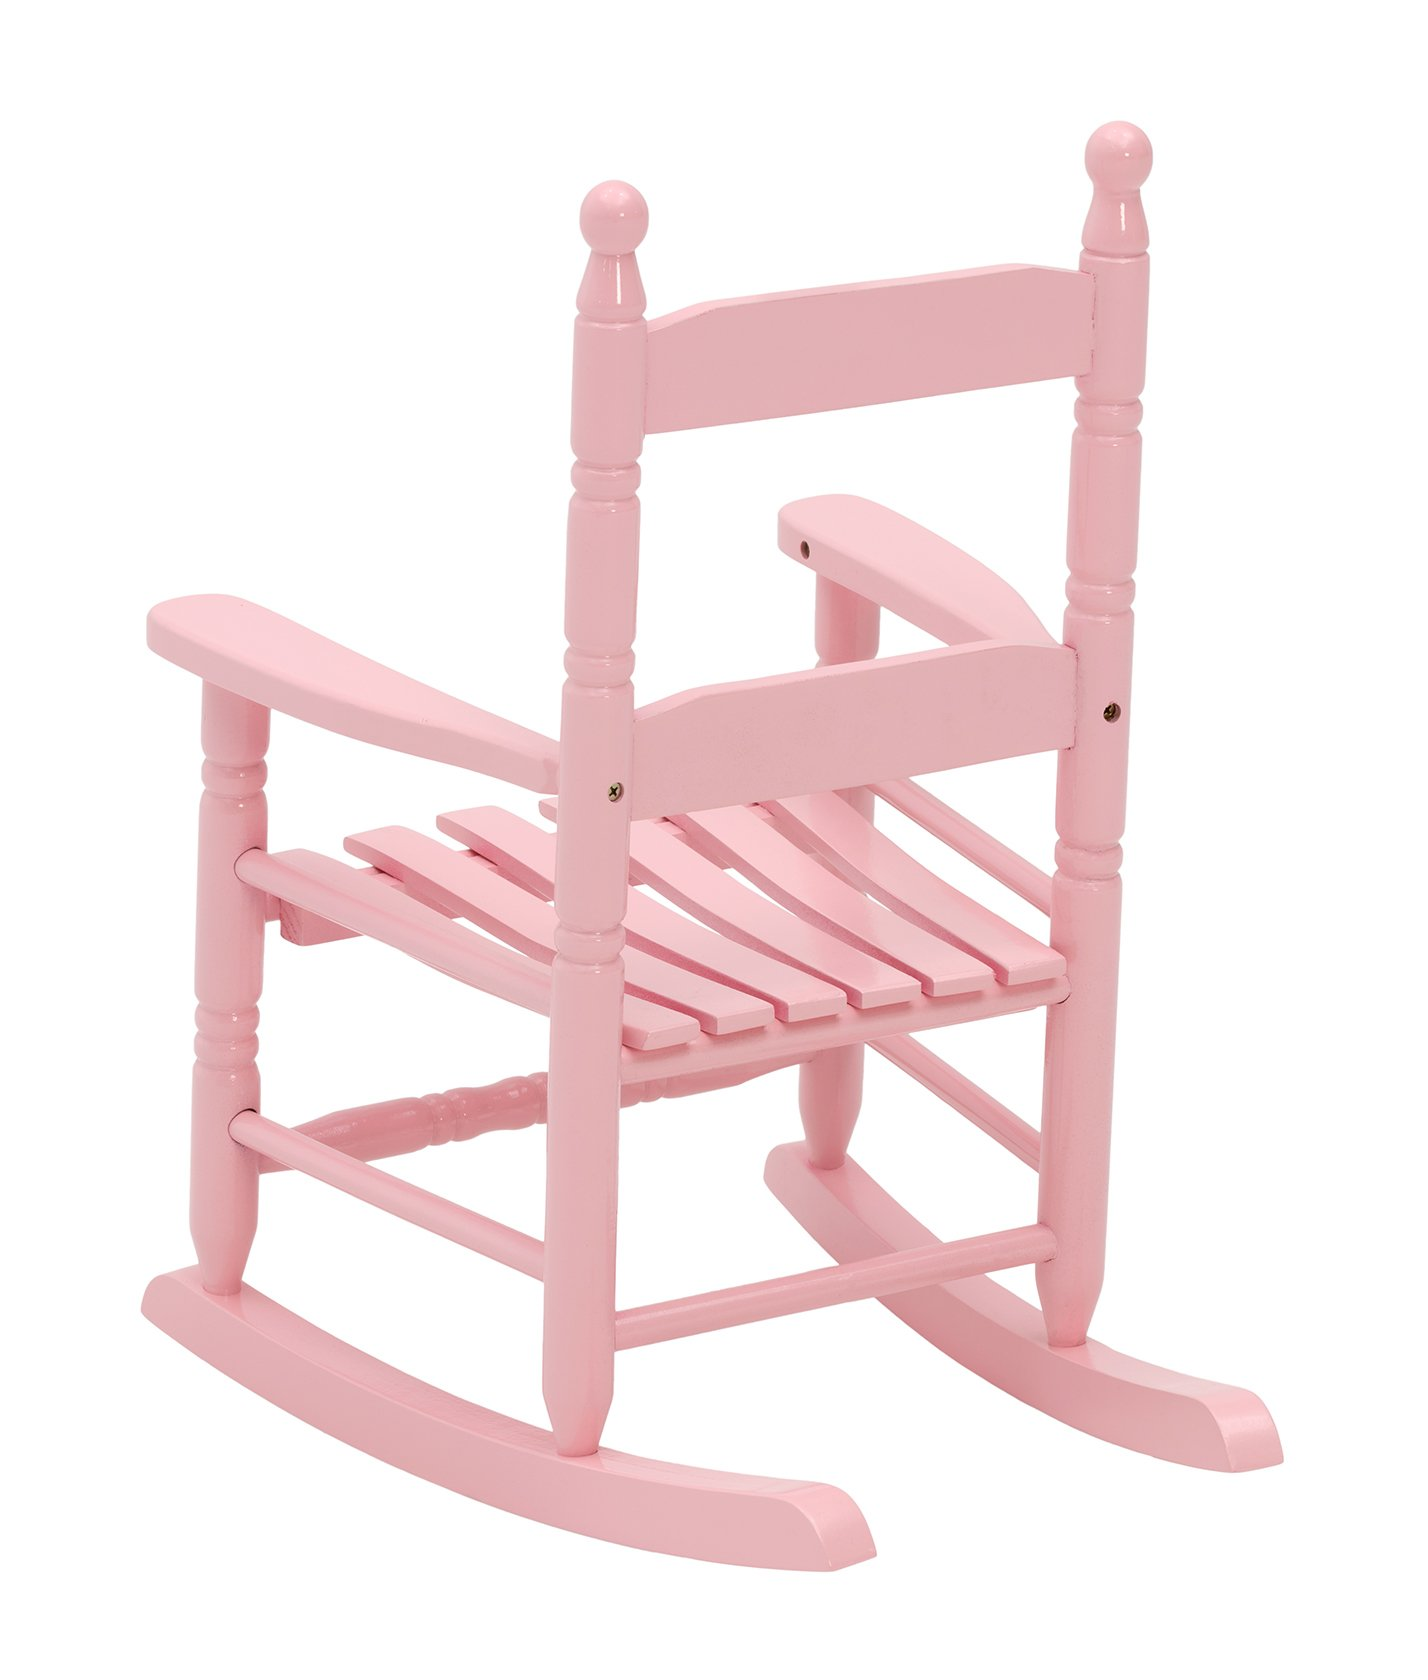 Jack Post KN-10P Knollwood Classic Child's Porch Rocker, Pink by Jack Post (Image #2)